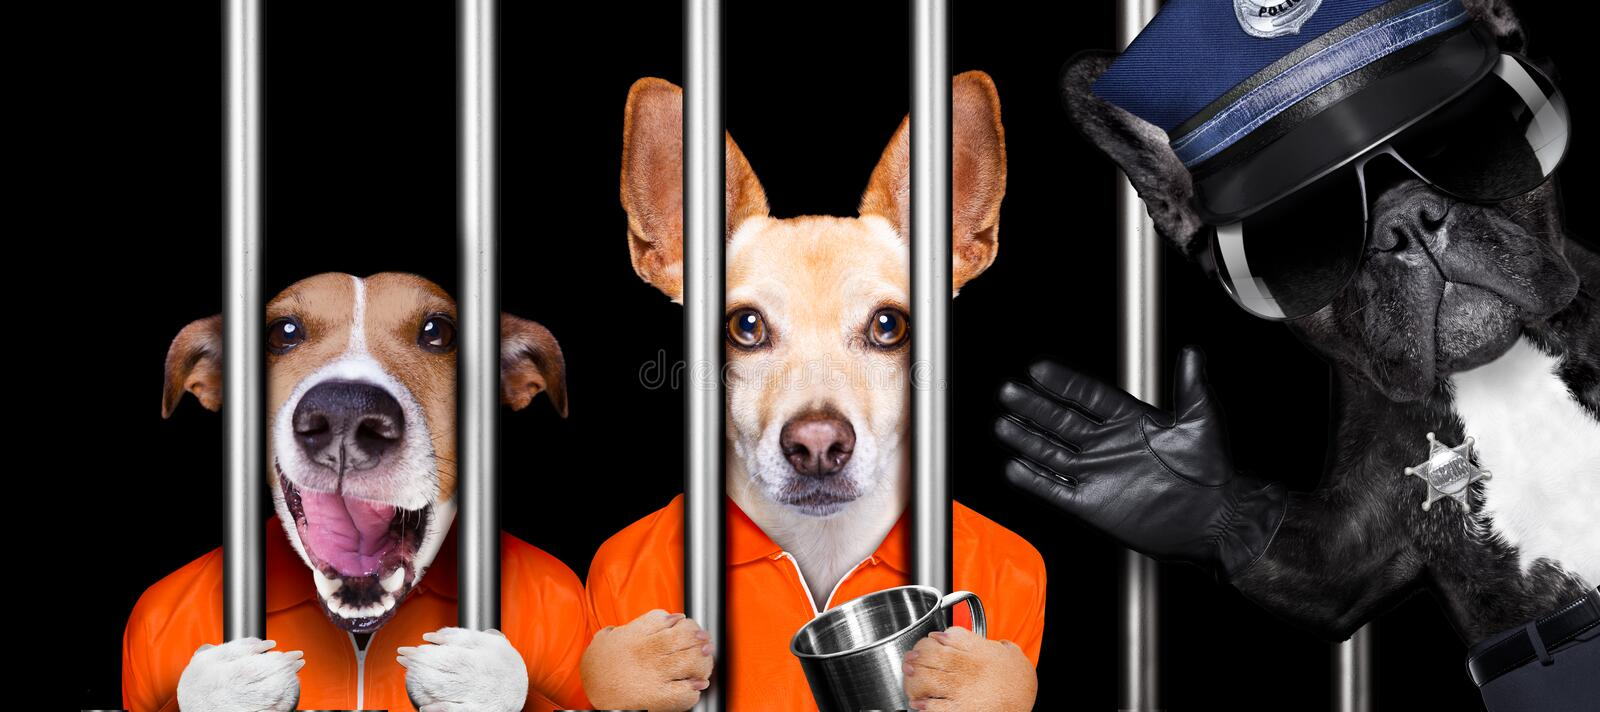 Dogs behind bars in jail prison royalty free stock photos